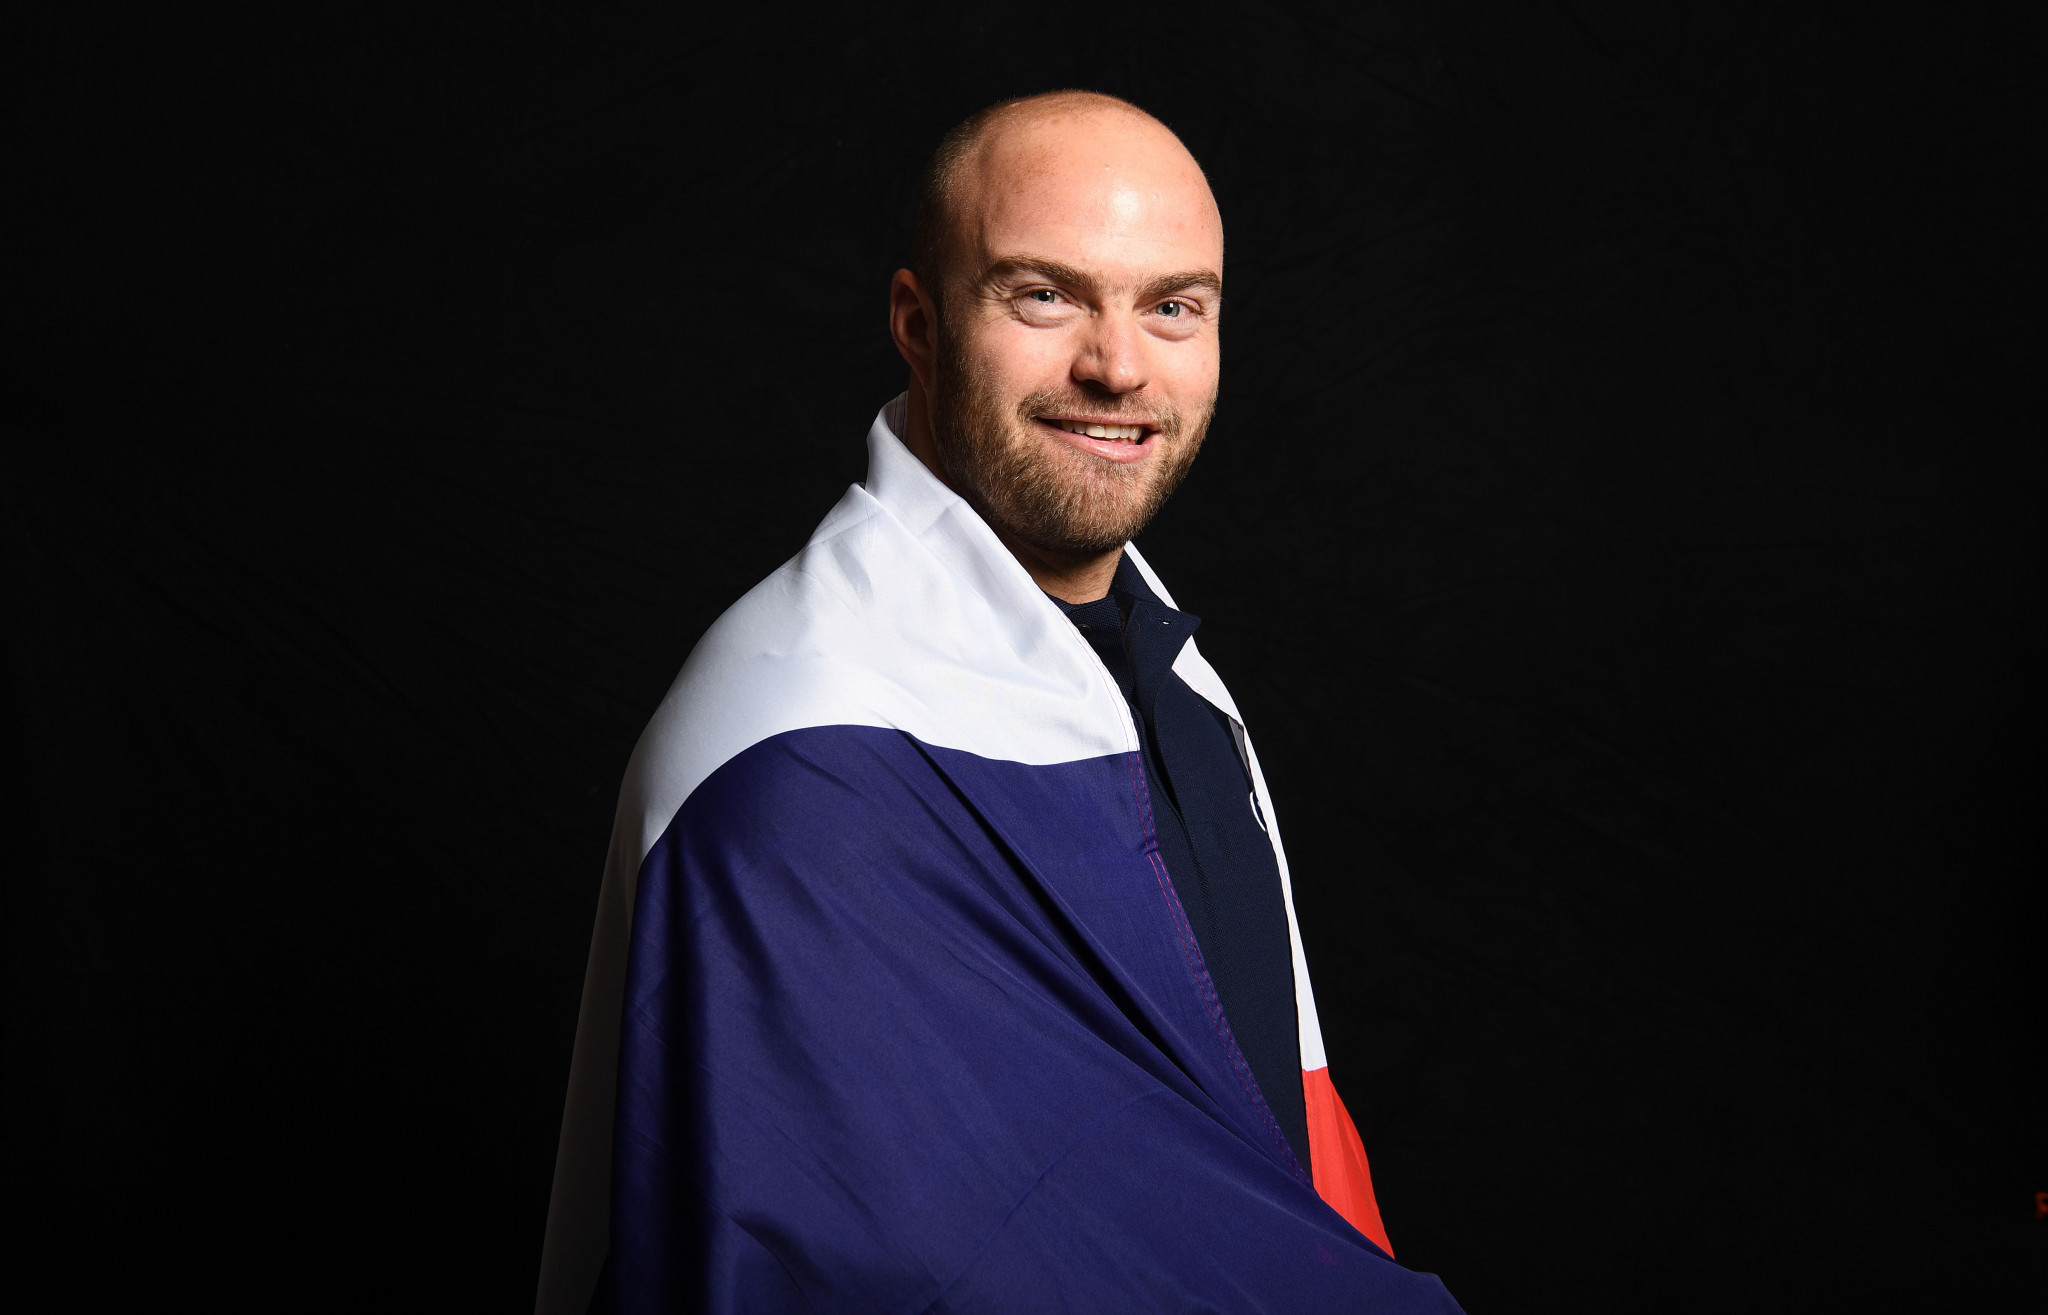 French skier David Poisson killed in training accident